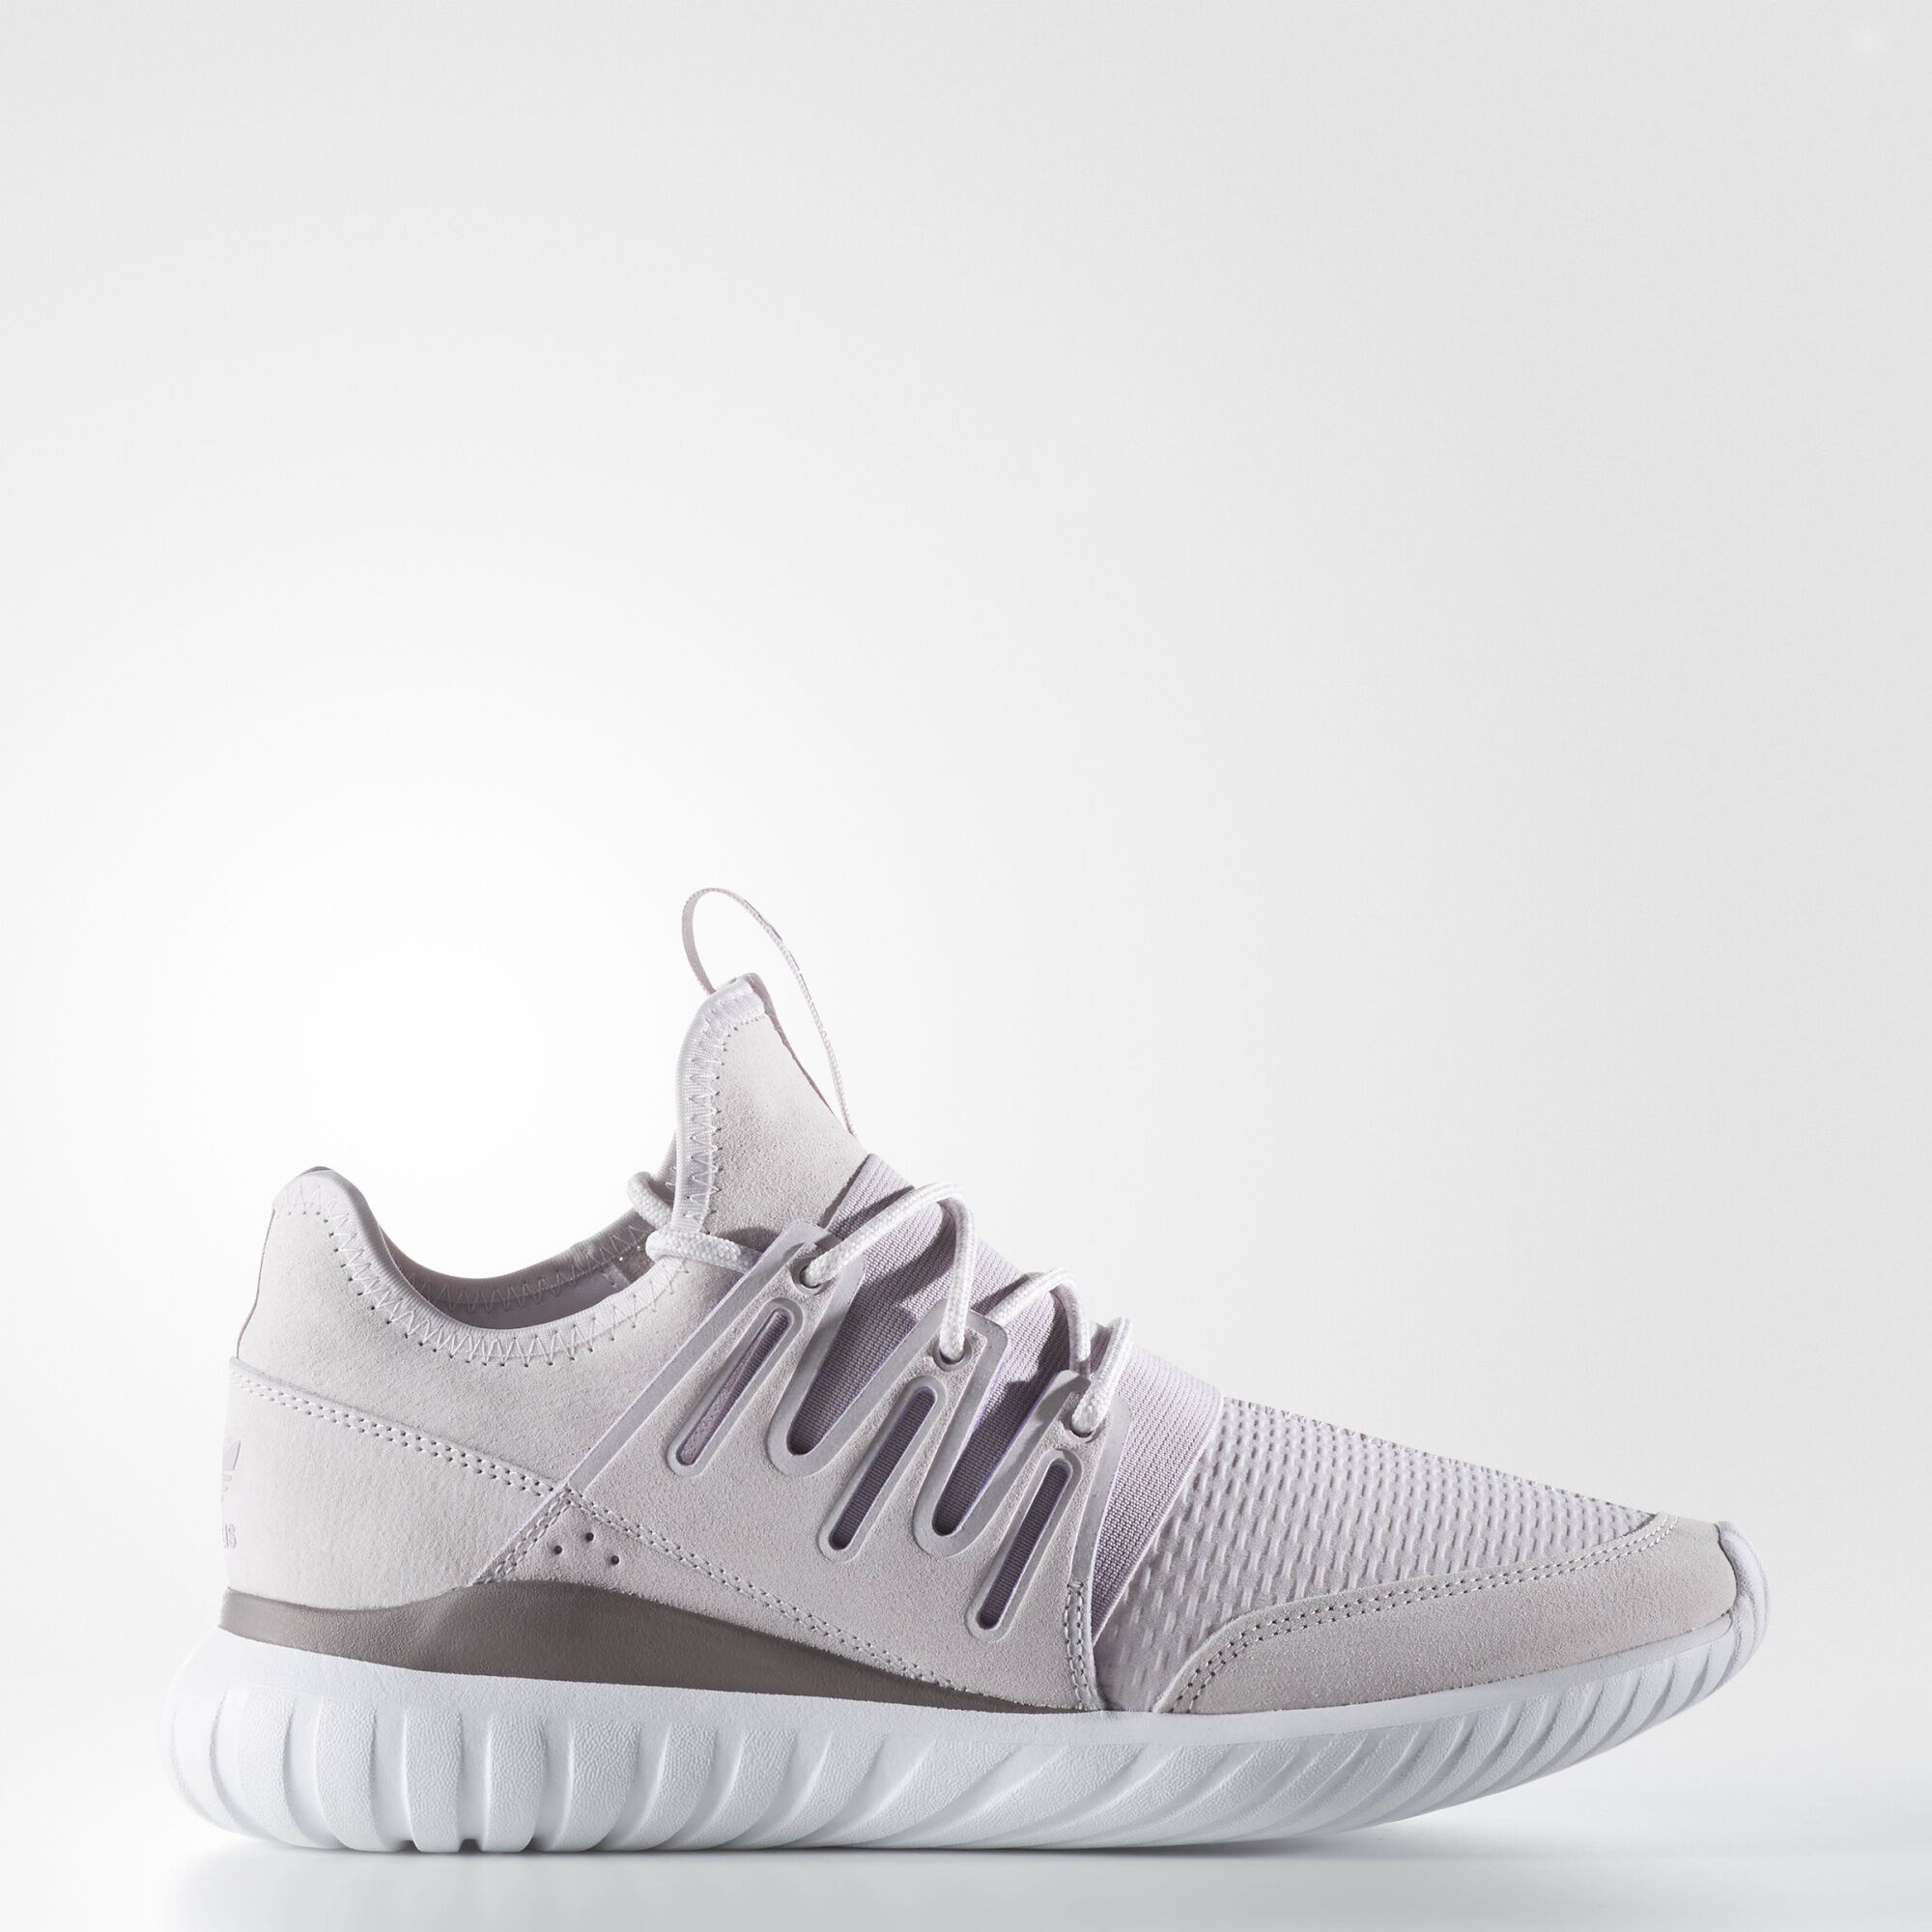 Adidas tubular size 8 US Men 's Shoes Australia